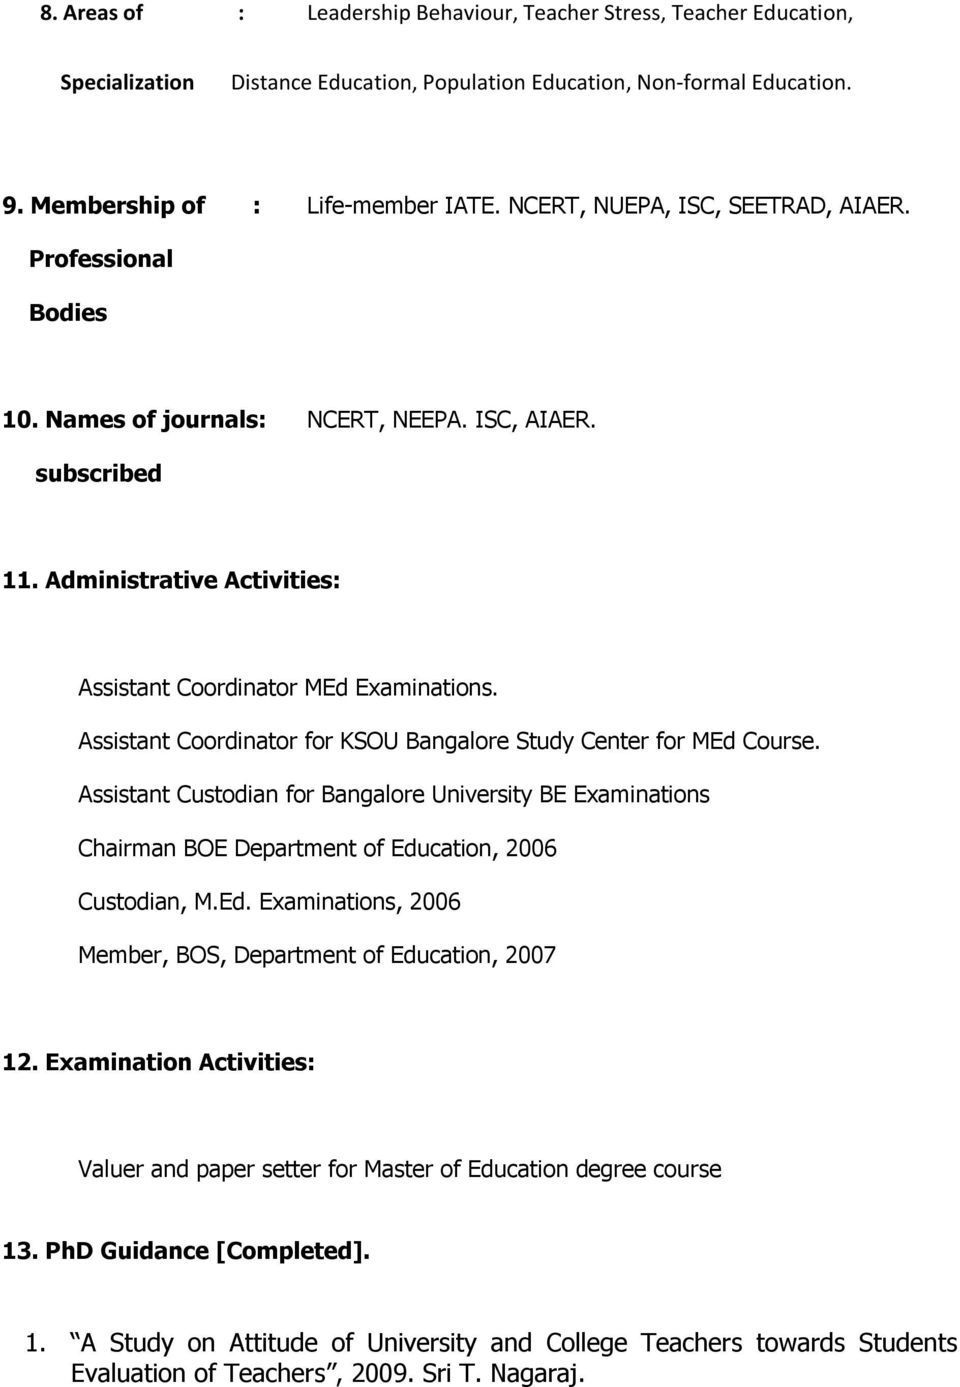 Assistant Coordinator for KSOU Bangalore Study Center for MEd Course. Assistant Custodian for Bangalore University BE Examinations Chairman BOE Department of Education, 2006 Custodian, M.Ed. Examinations, 2006 Member, BOS, Department of Education, 2007 12.